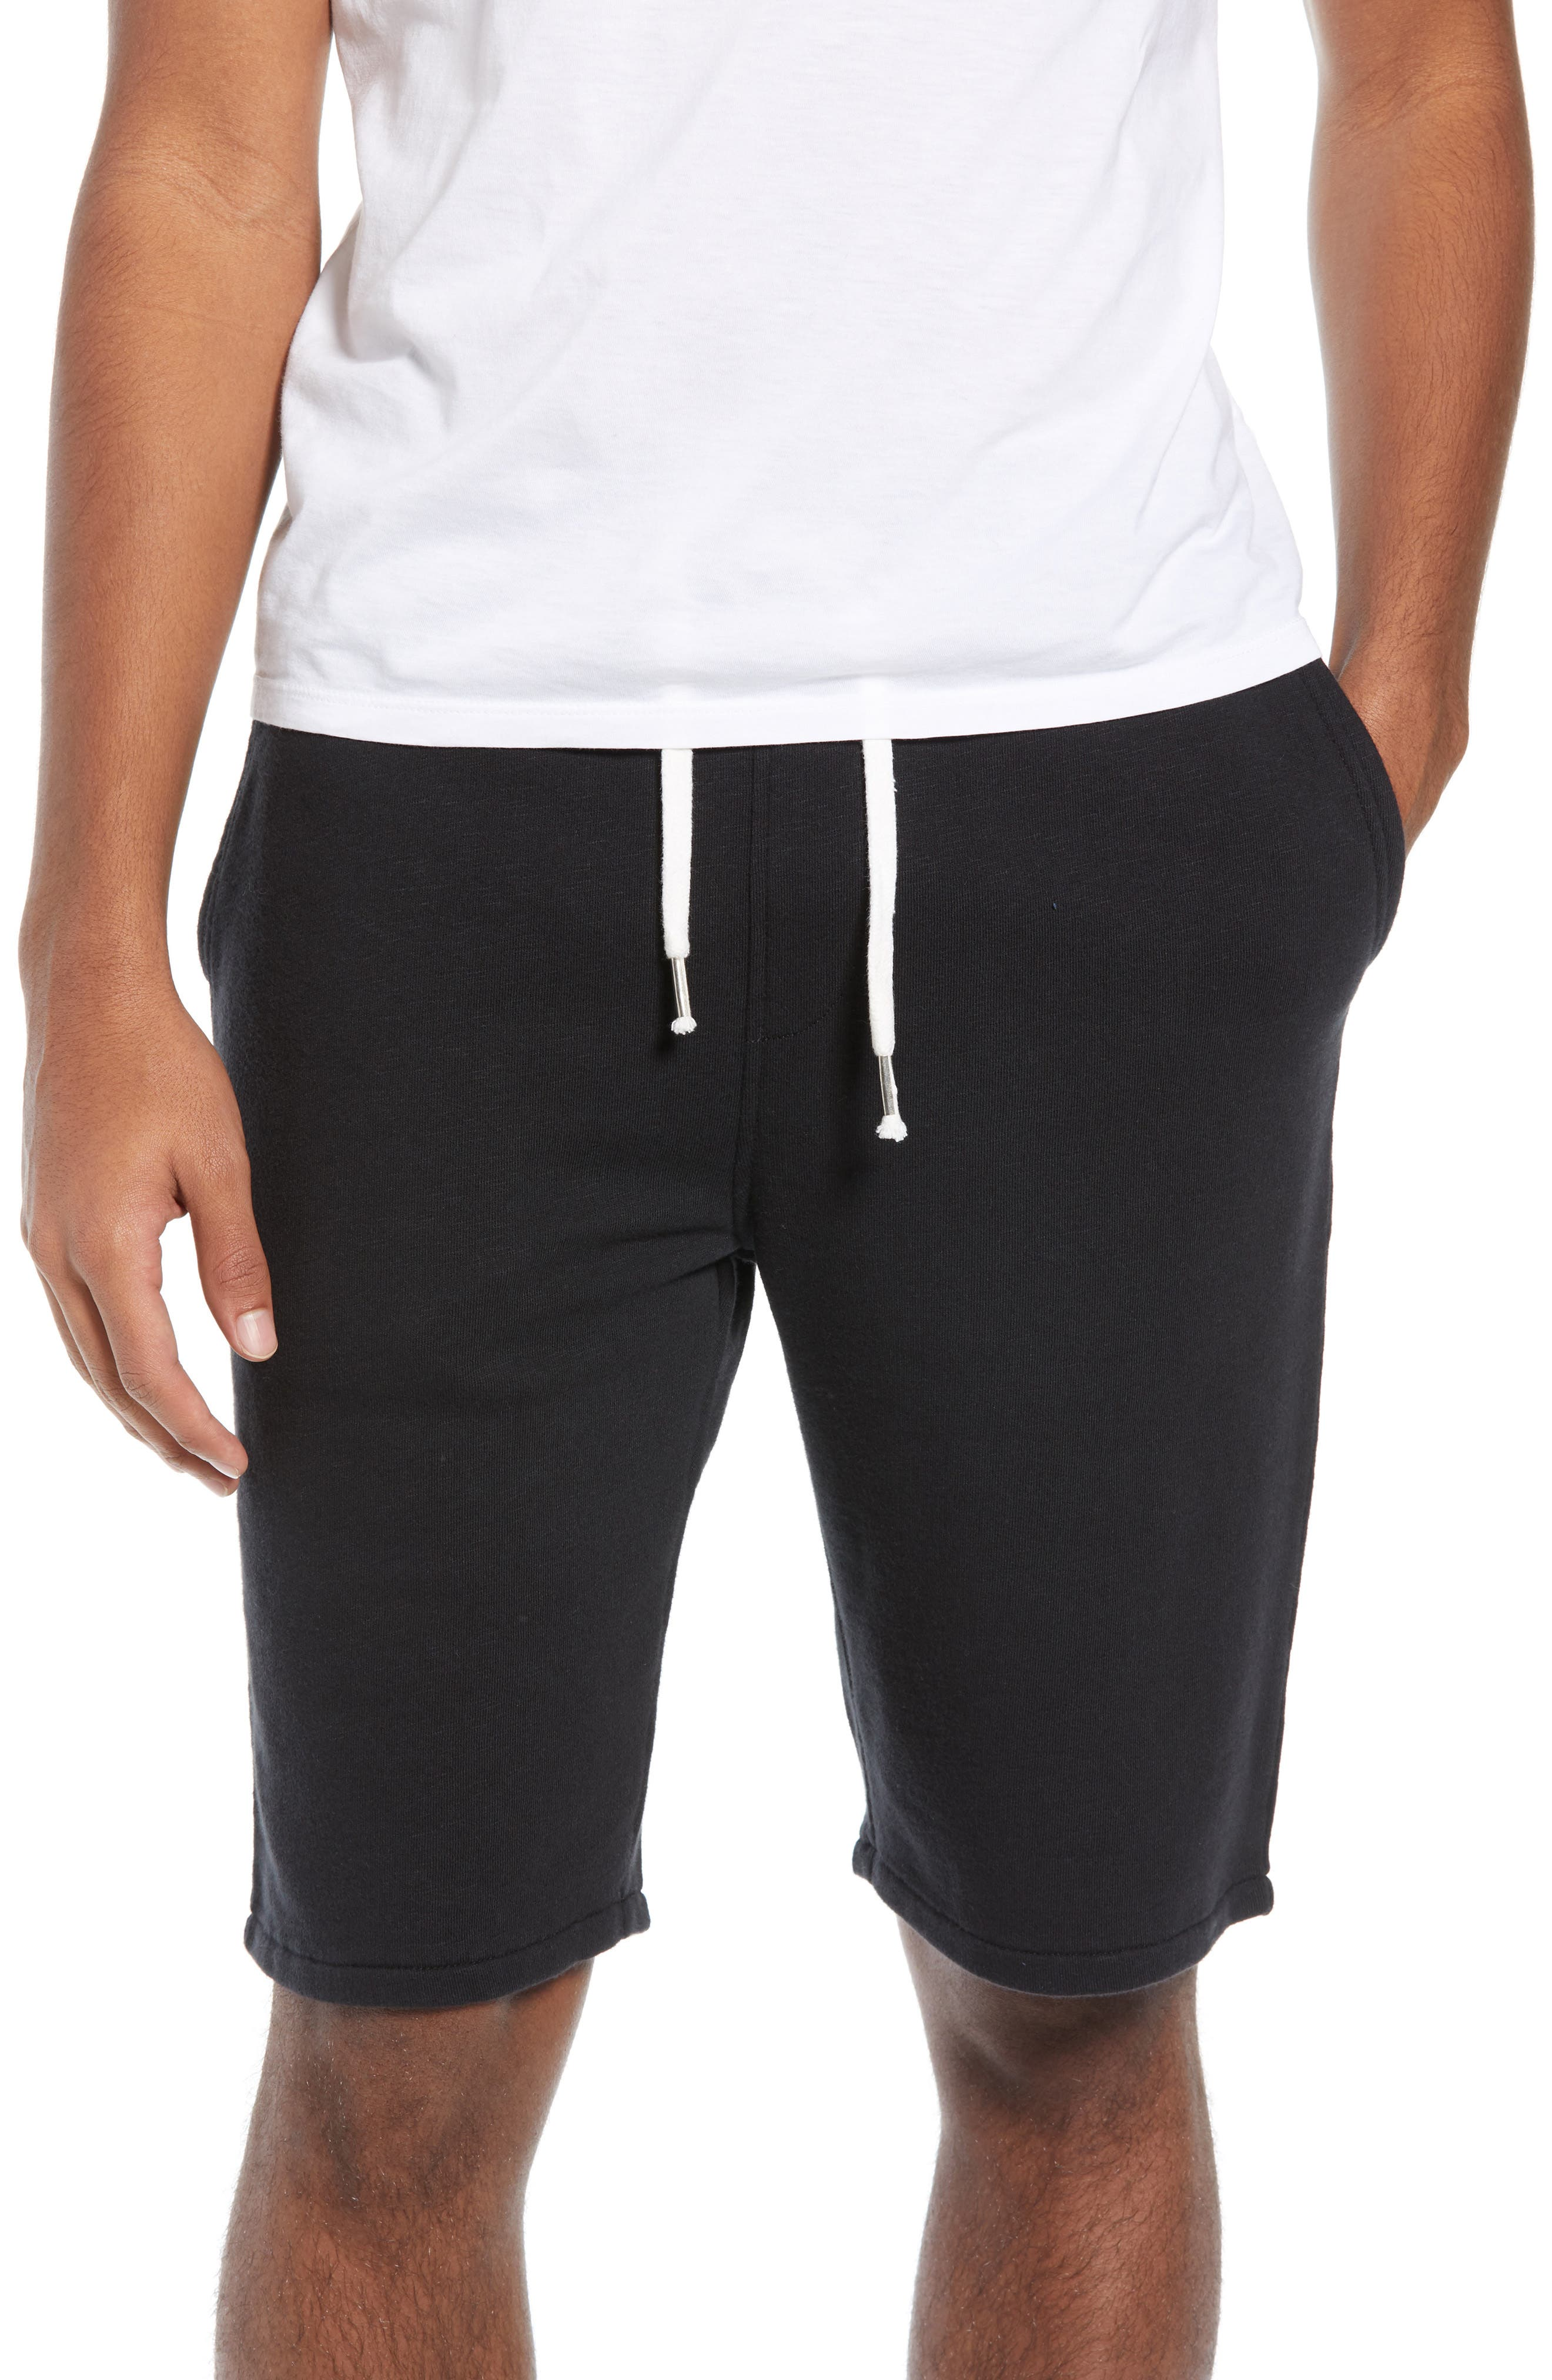 THE RAIL Terry Athletic Shorts, Main, color, BLACK ROCK